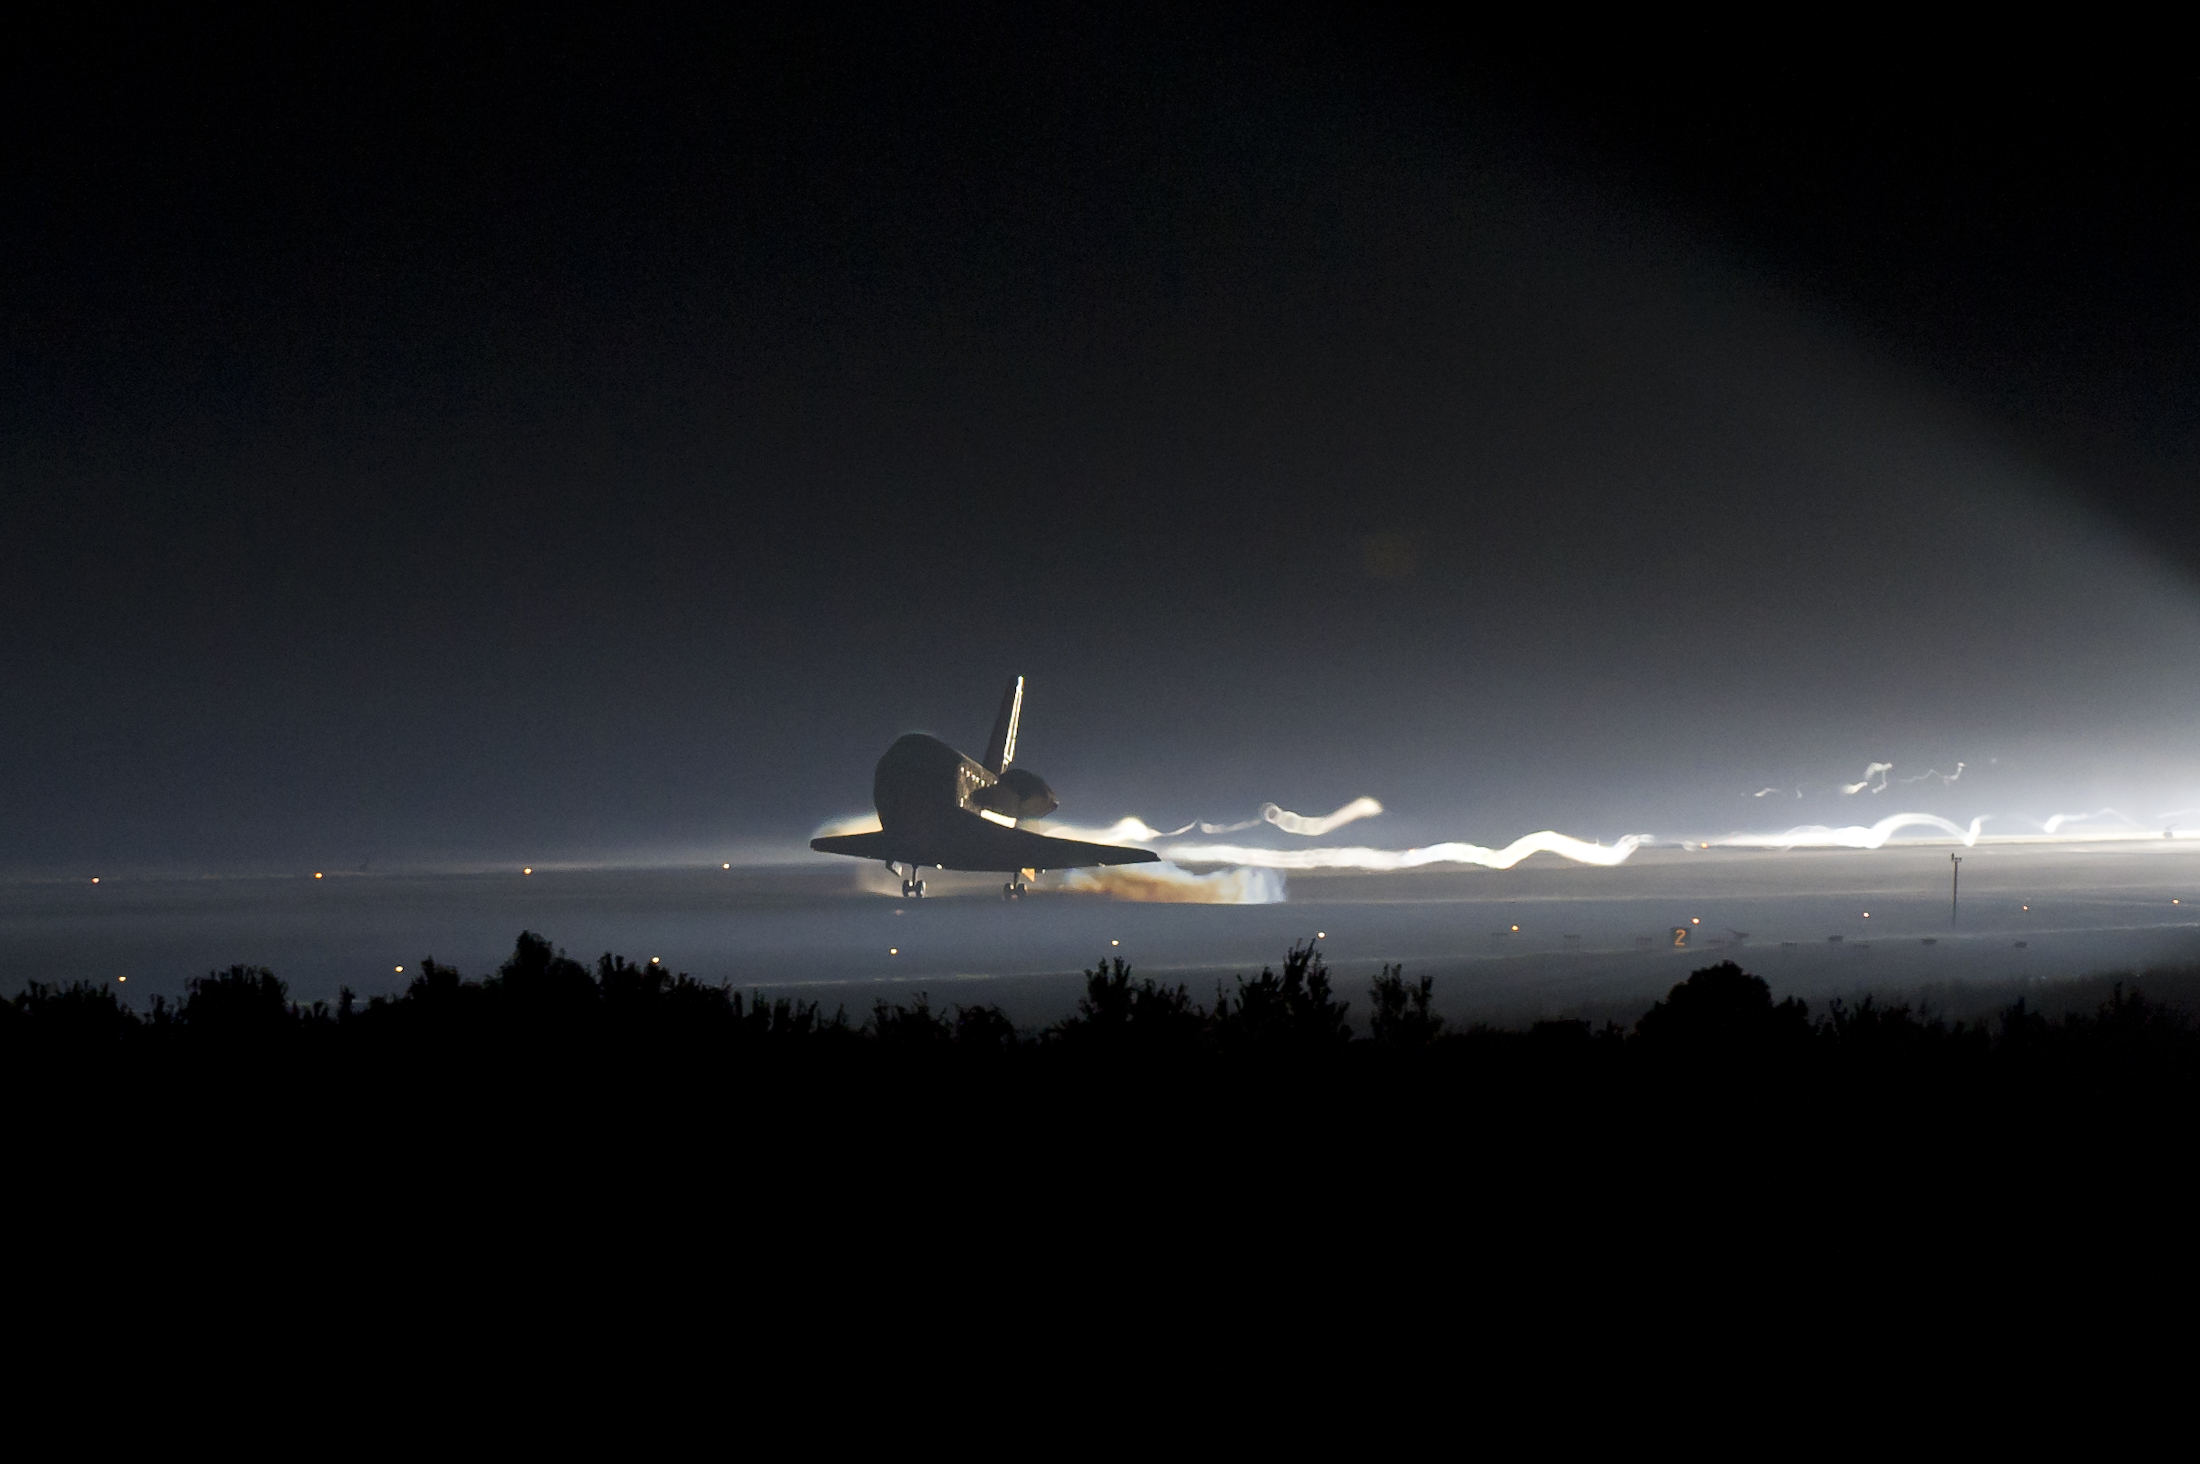 space shuttle landing from inside - photo #26